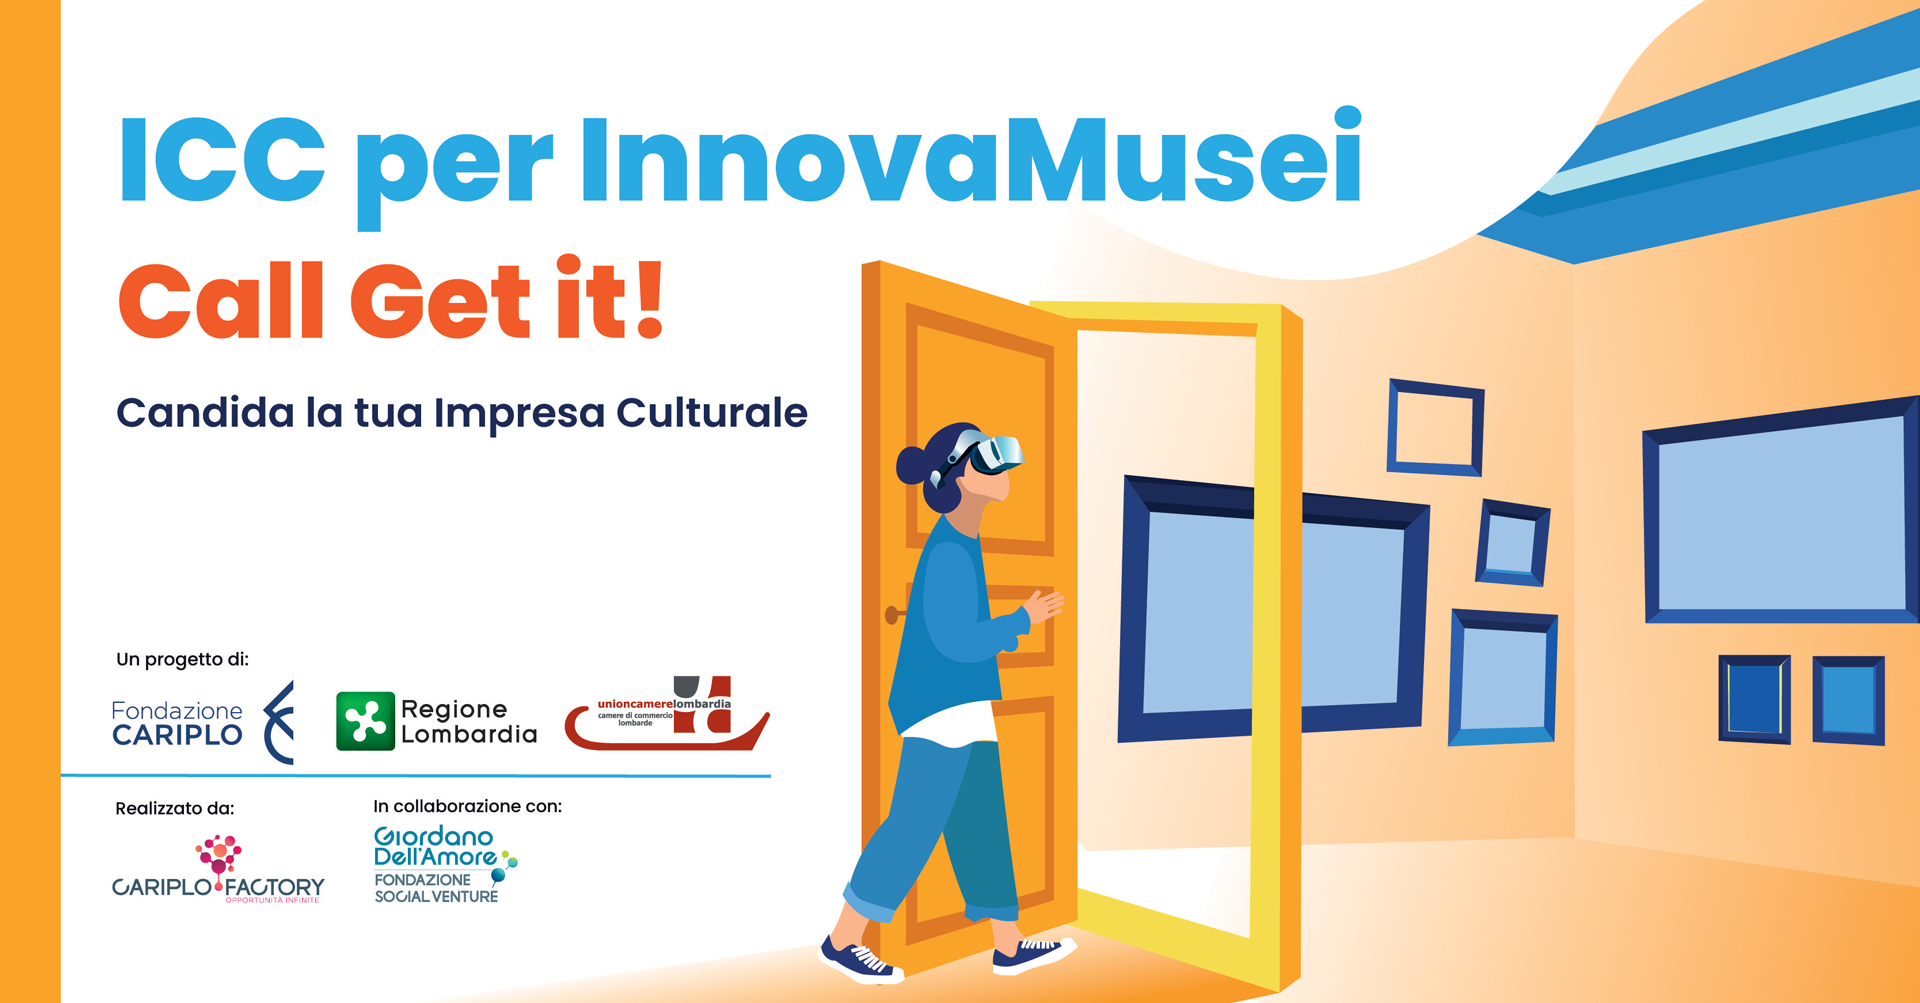 Al via ICC per InnovaMusei, la nuova call di Get it!